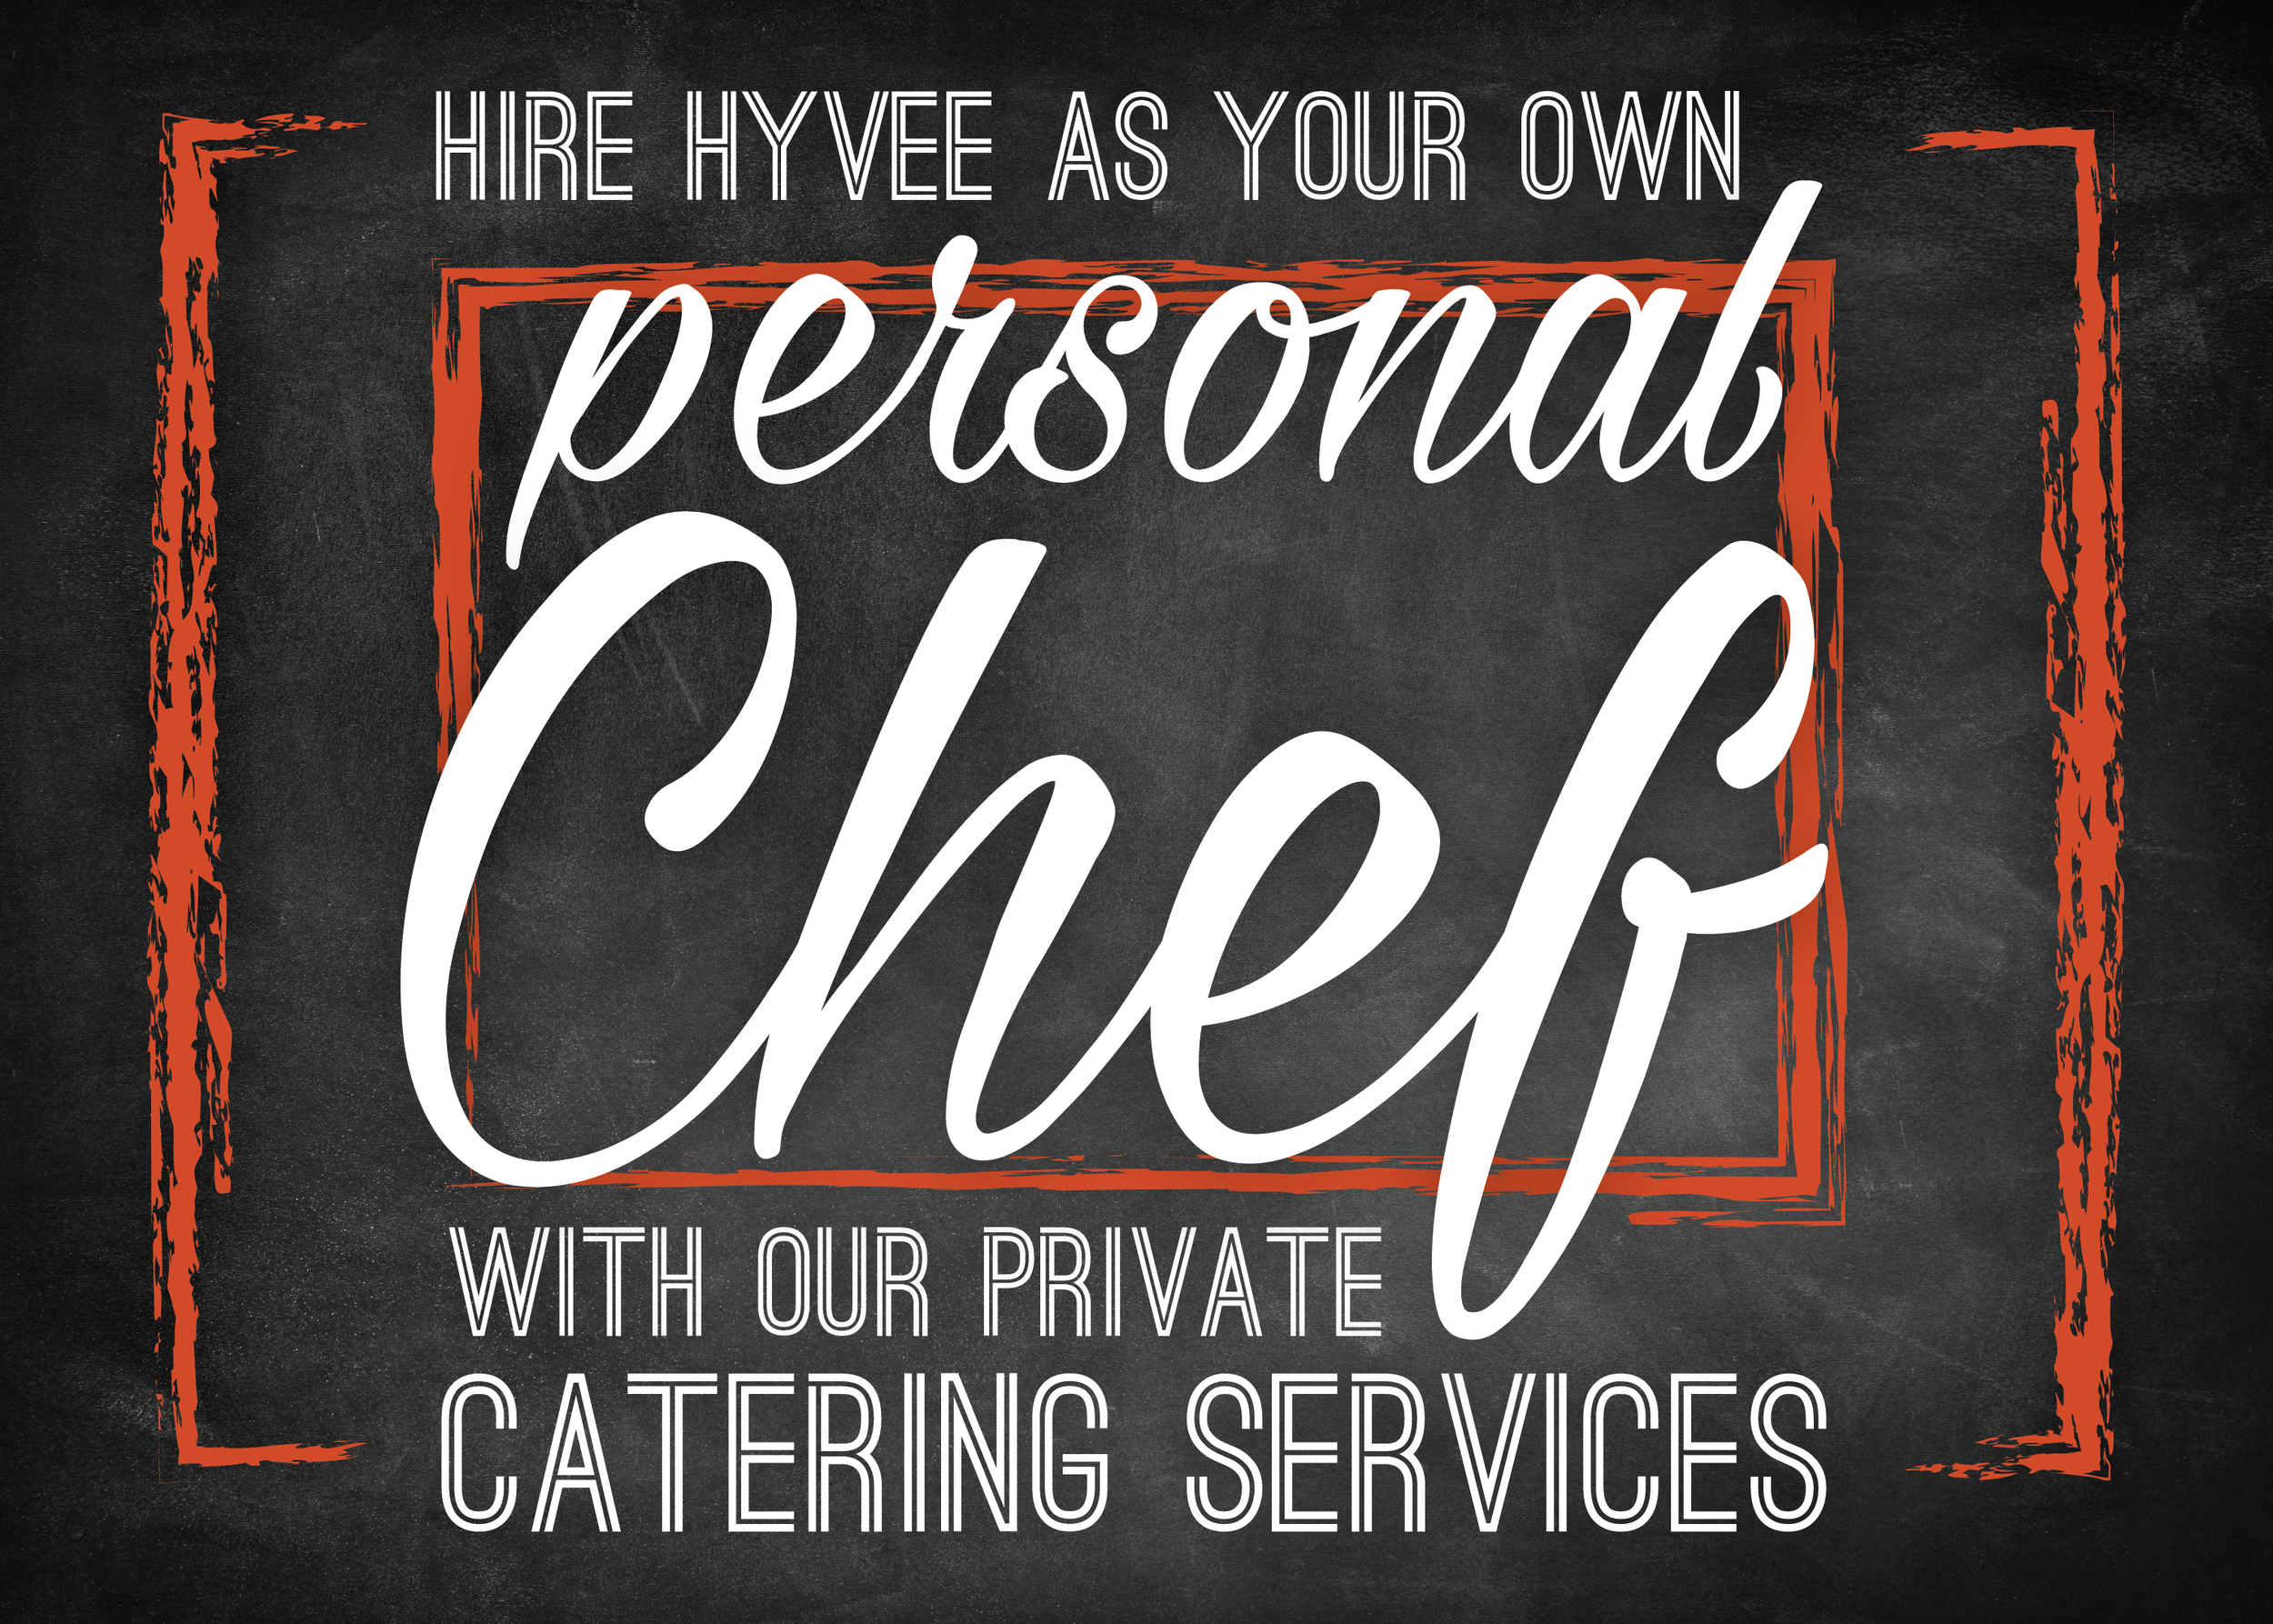 ChefsCreations_Chalkboards_FINAL-02.png